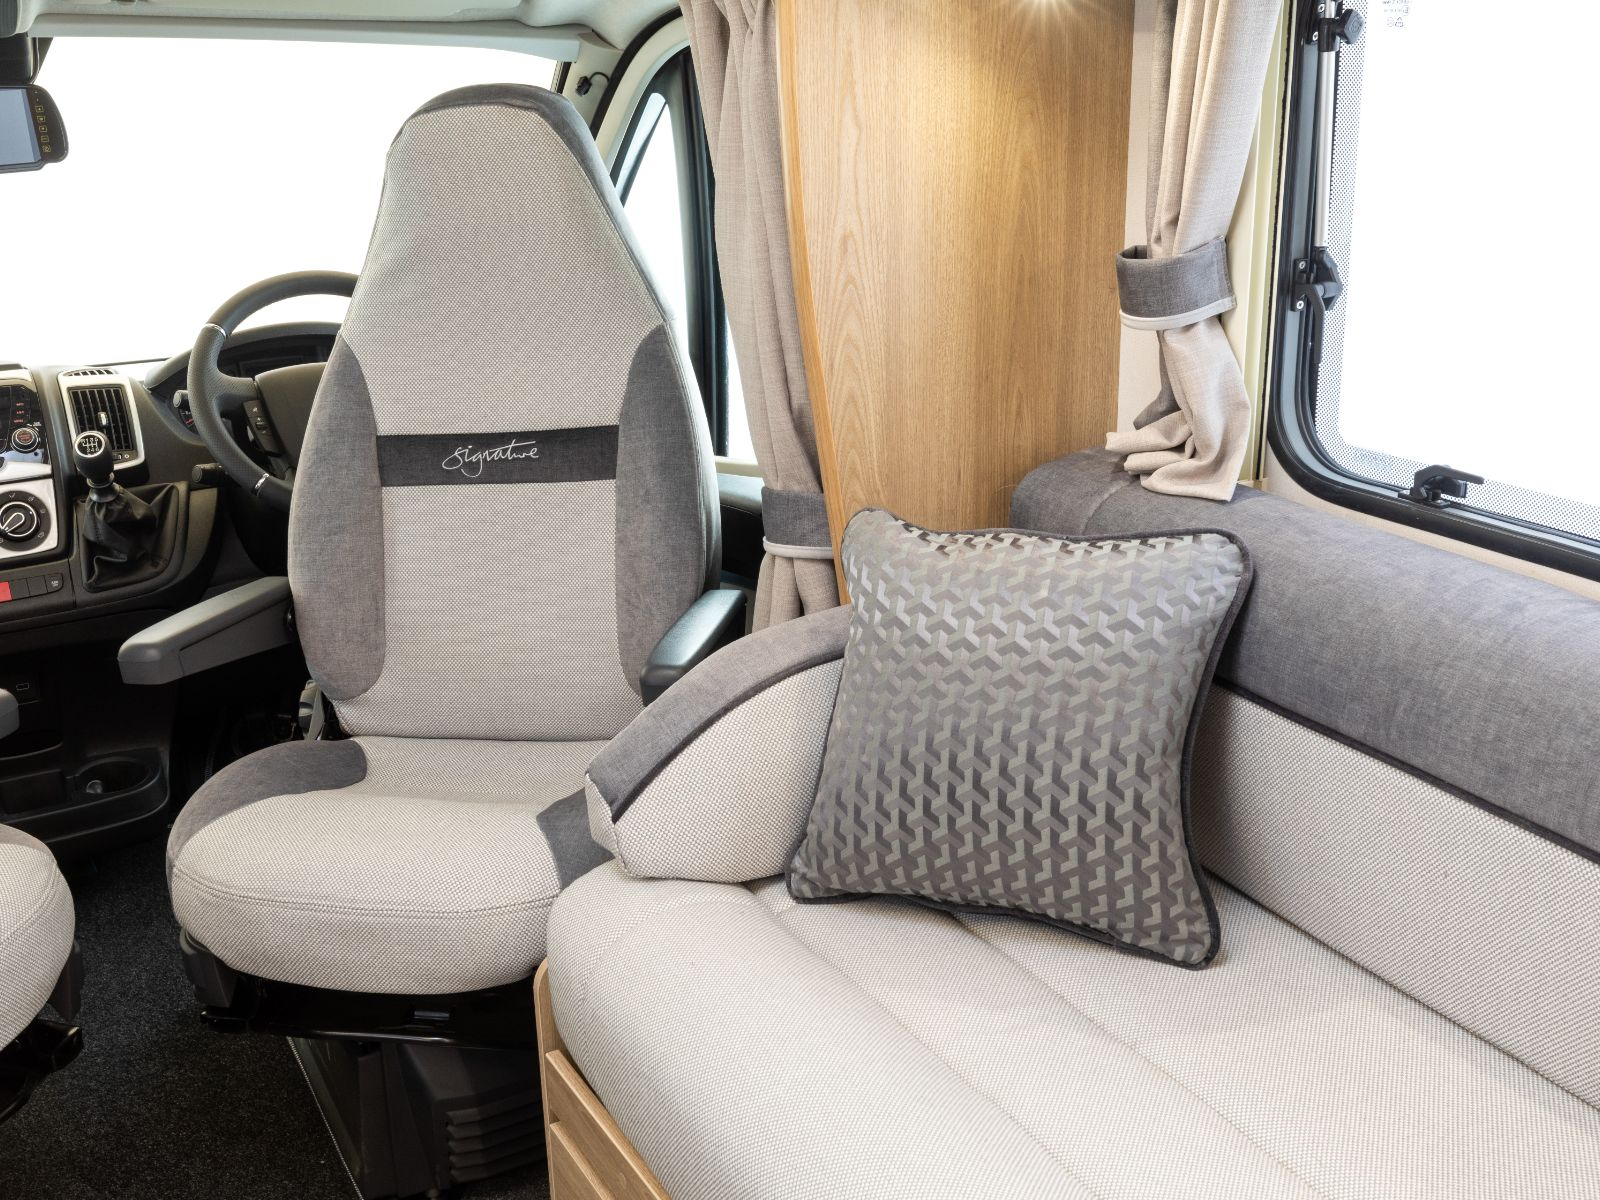 Signature 155 Cab Seating'